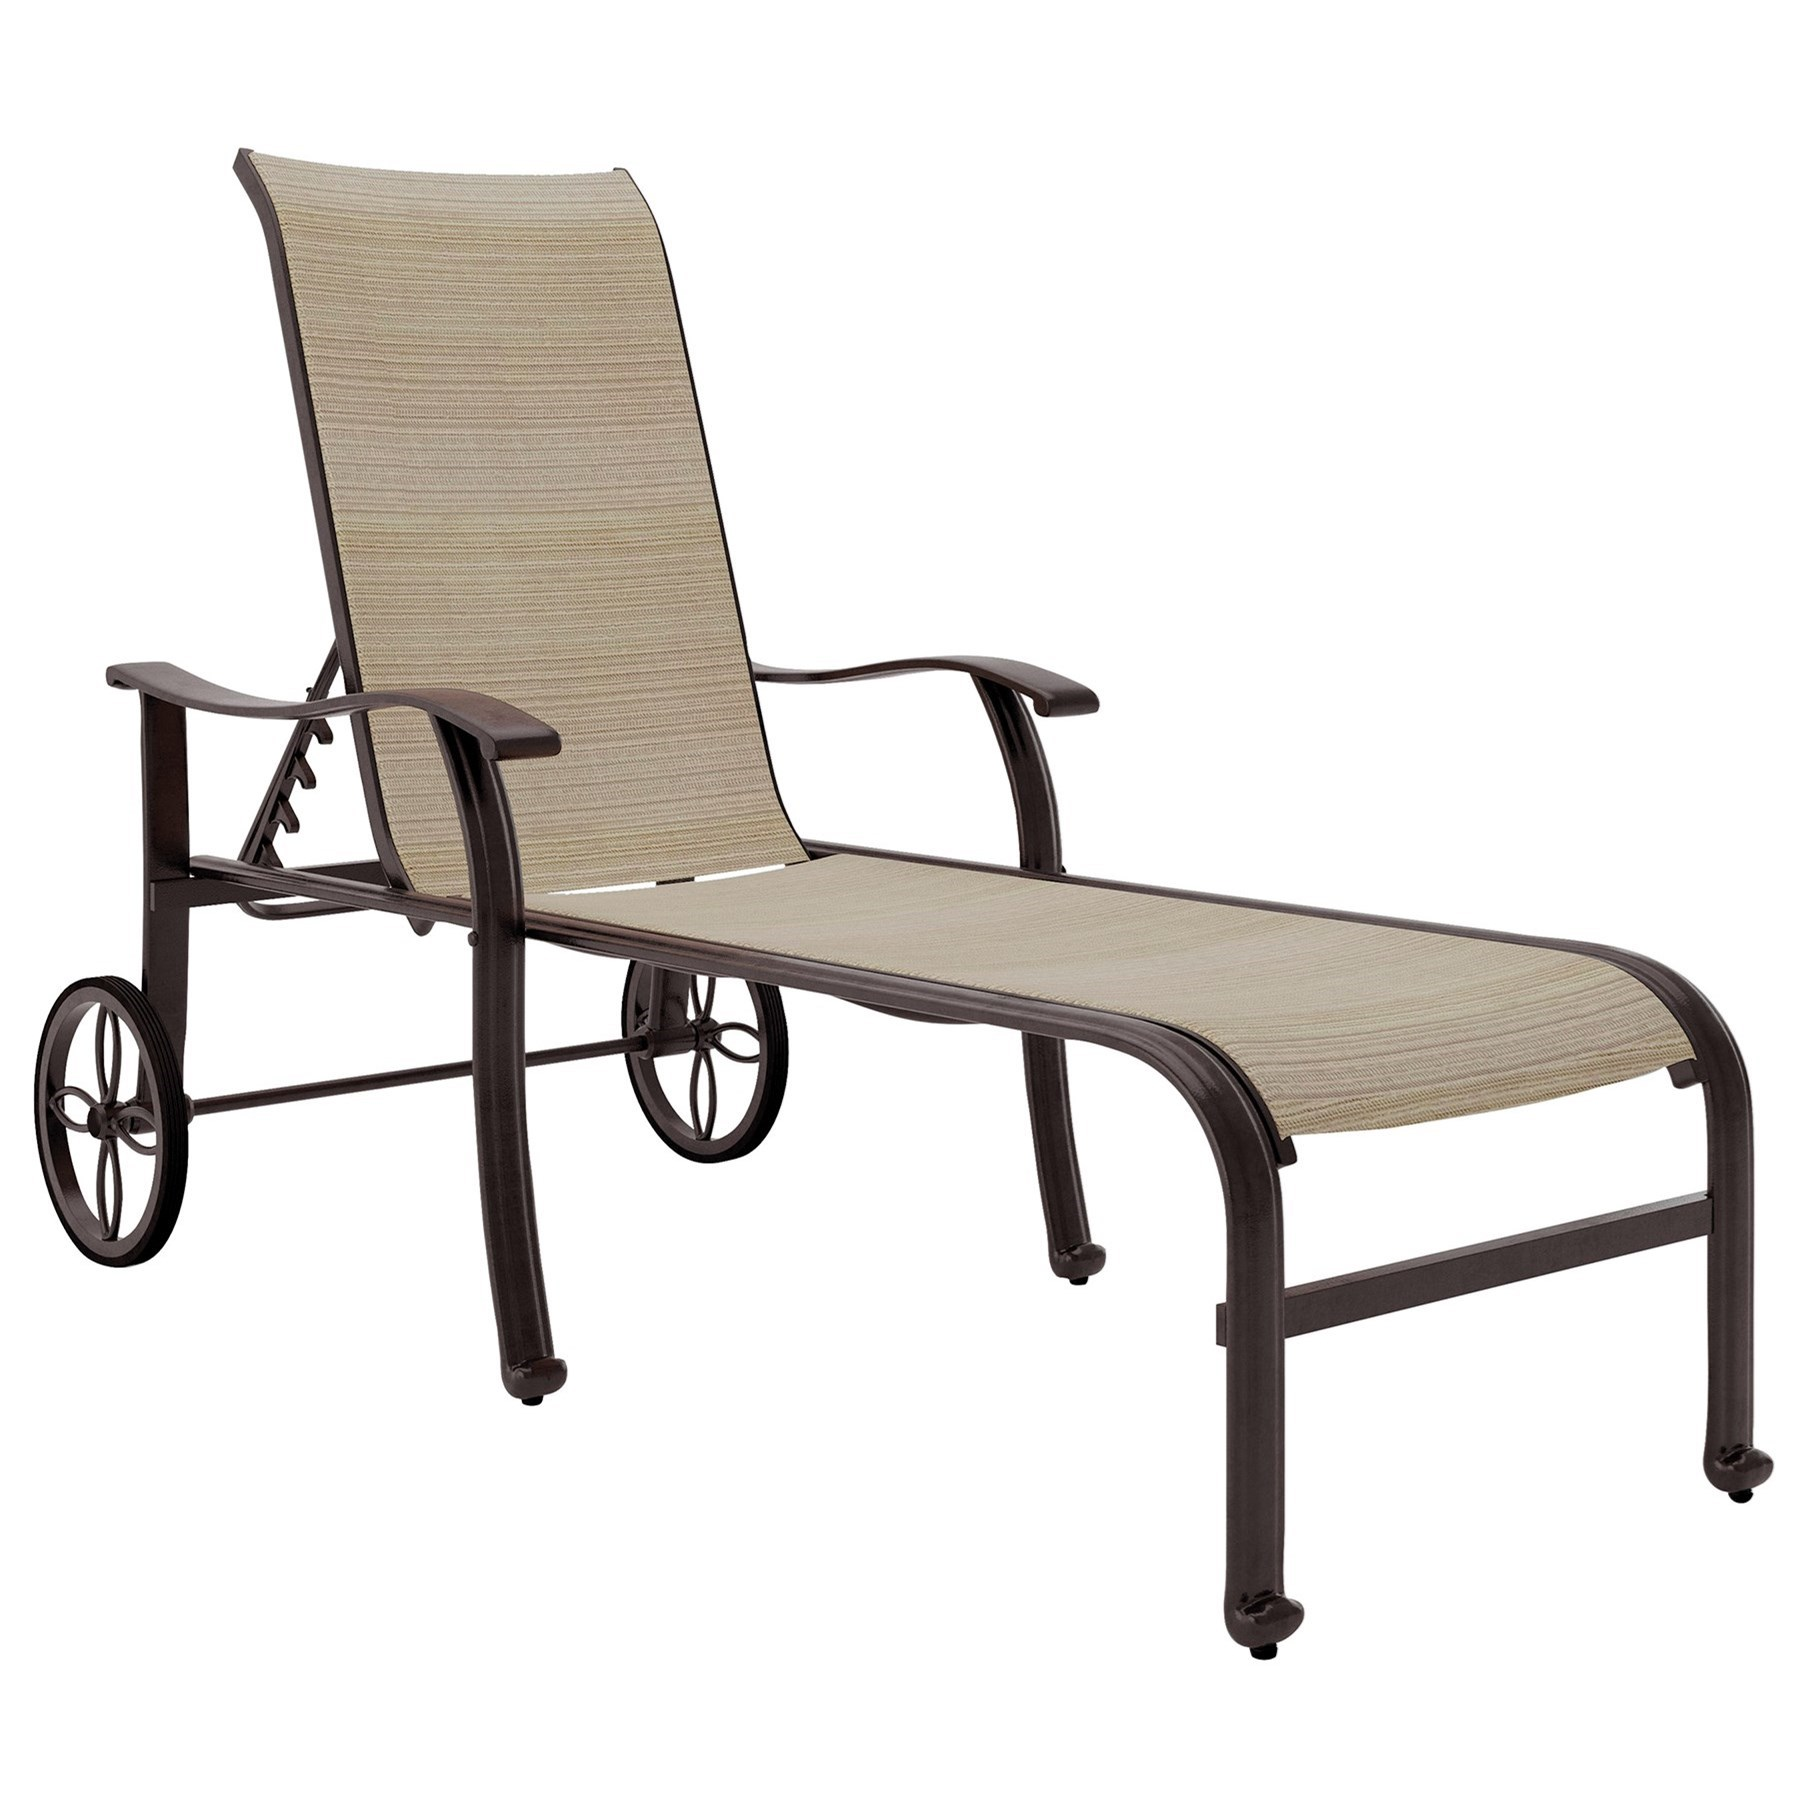 Signature design by ashley bass lake sling chaise lounge for Chaise design copie